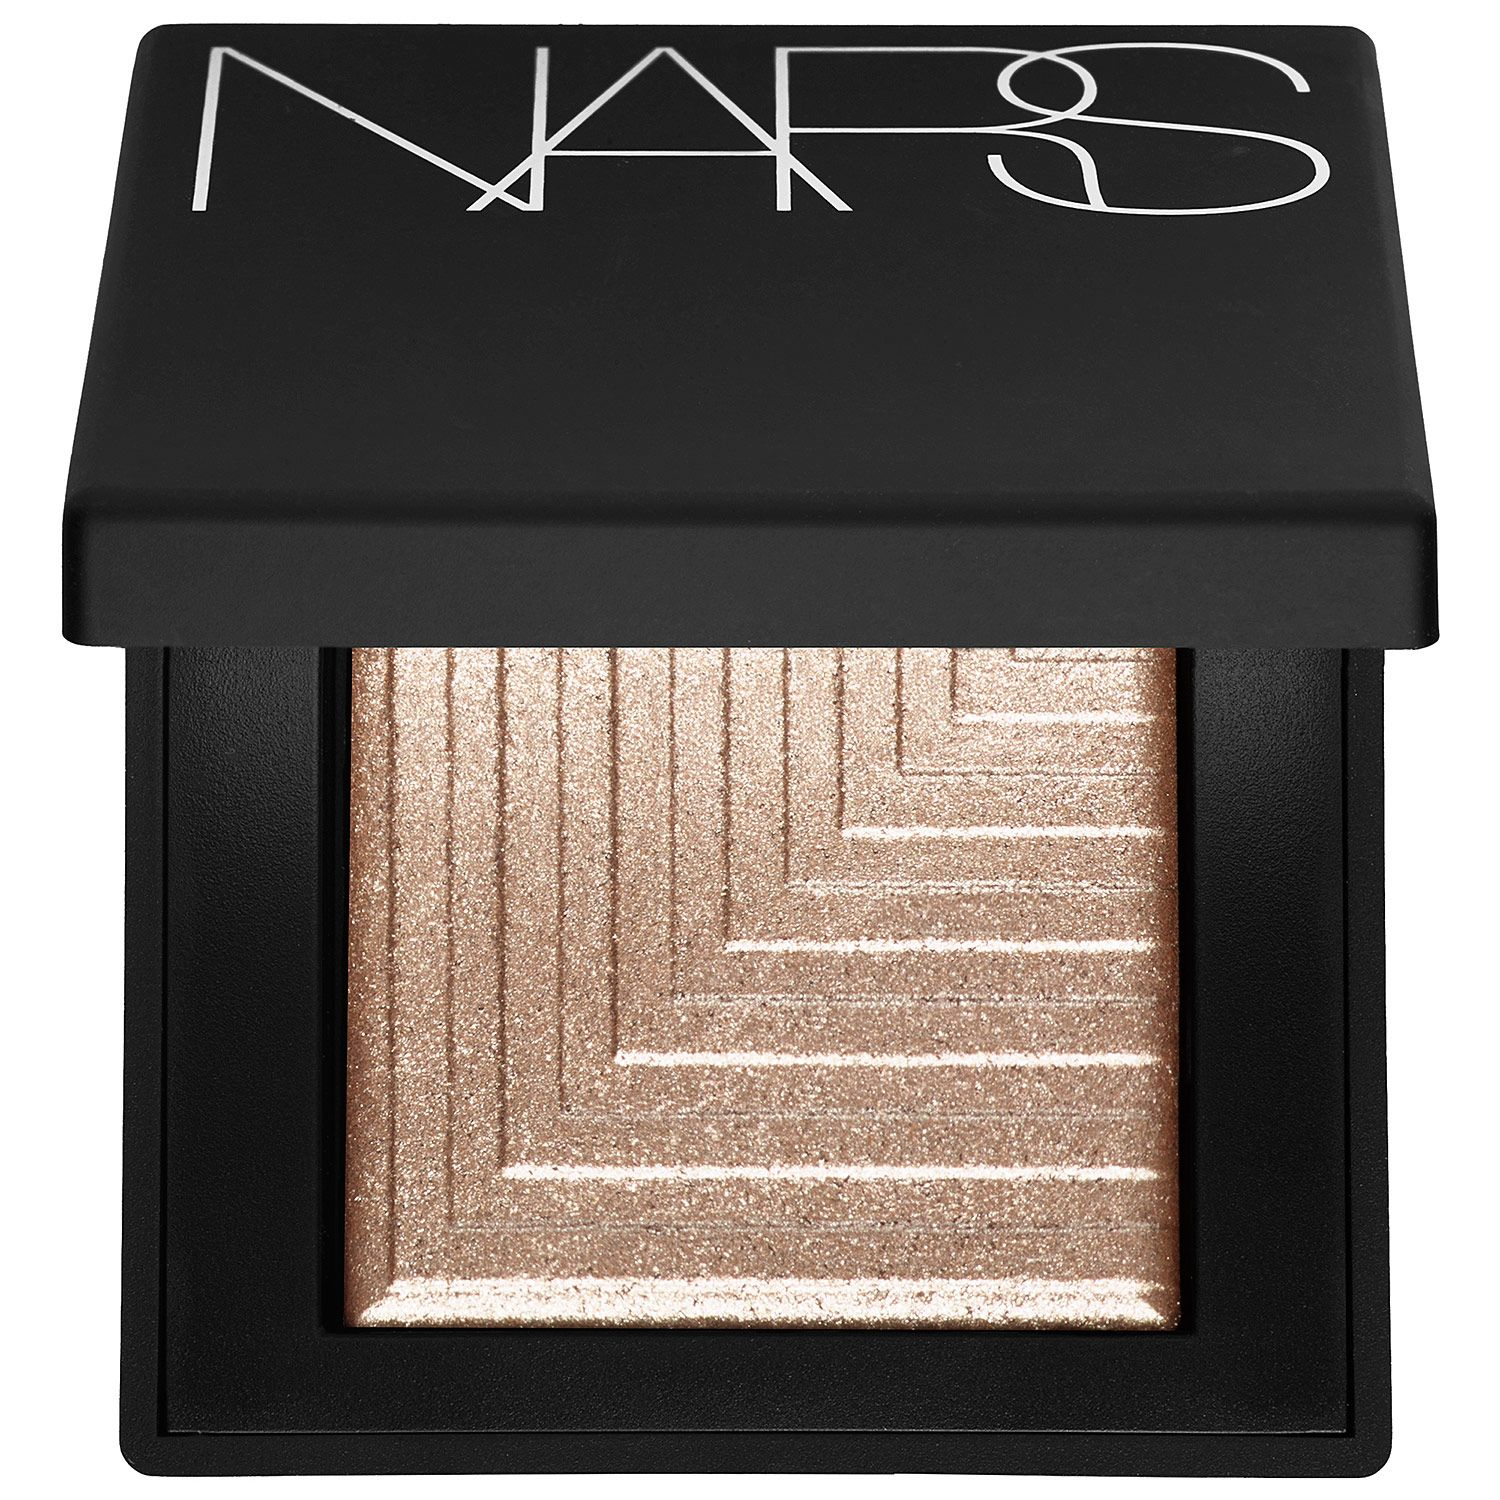 Nars Dual-Intensive Eyeshadow